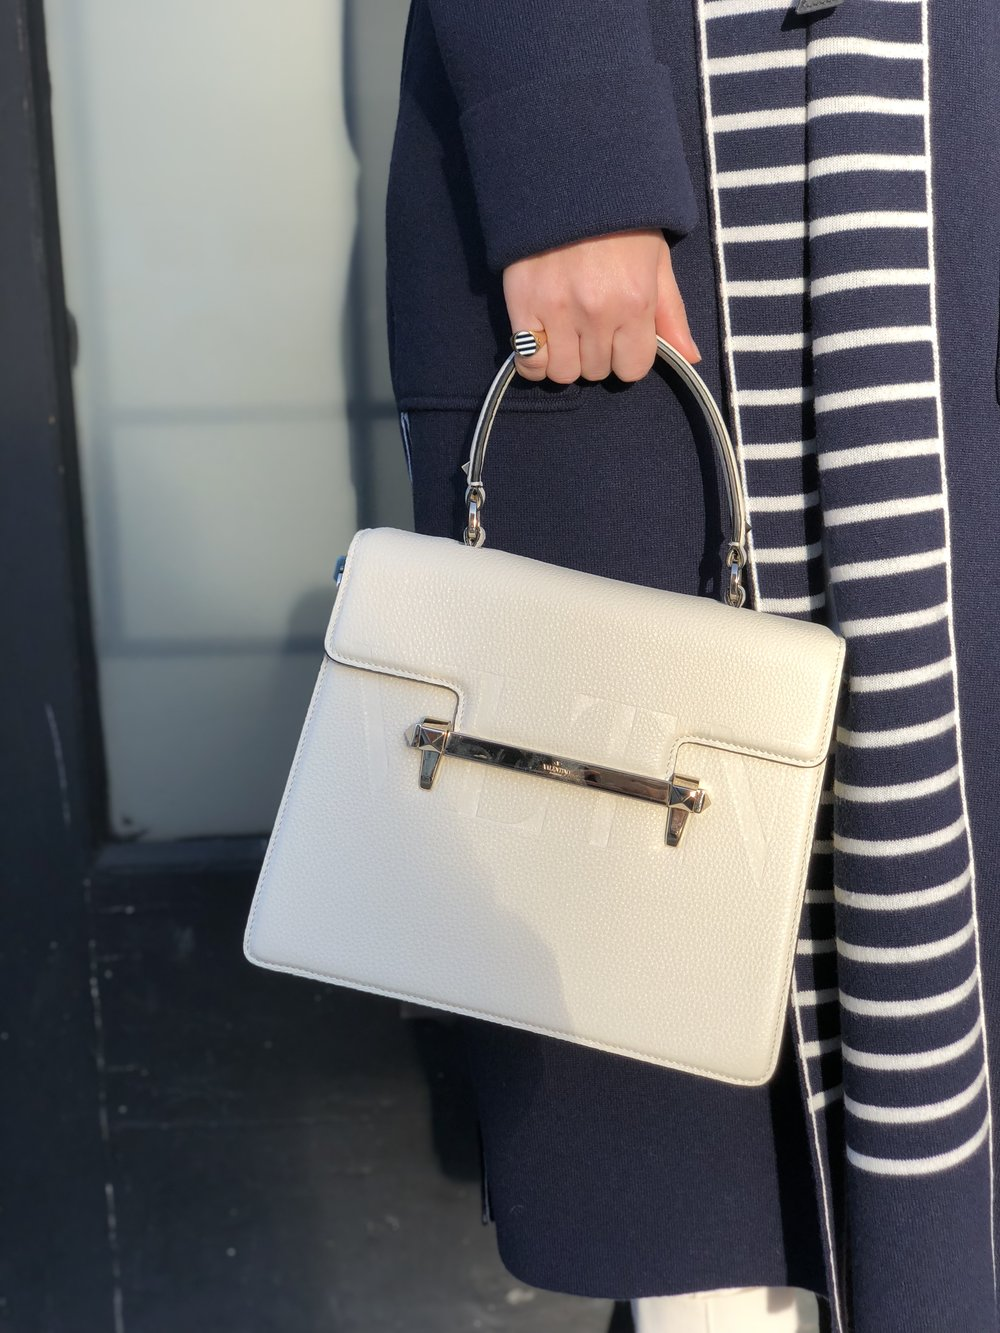 Plus coordinating ring by Jessica Biales and a classic Valentino handbag.